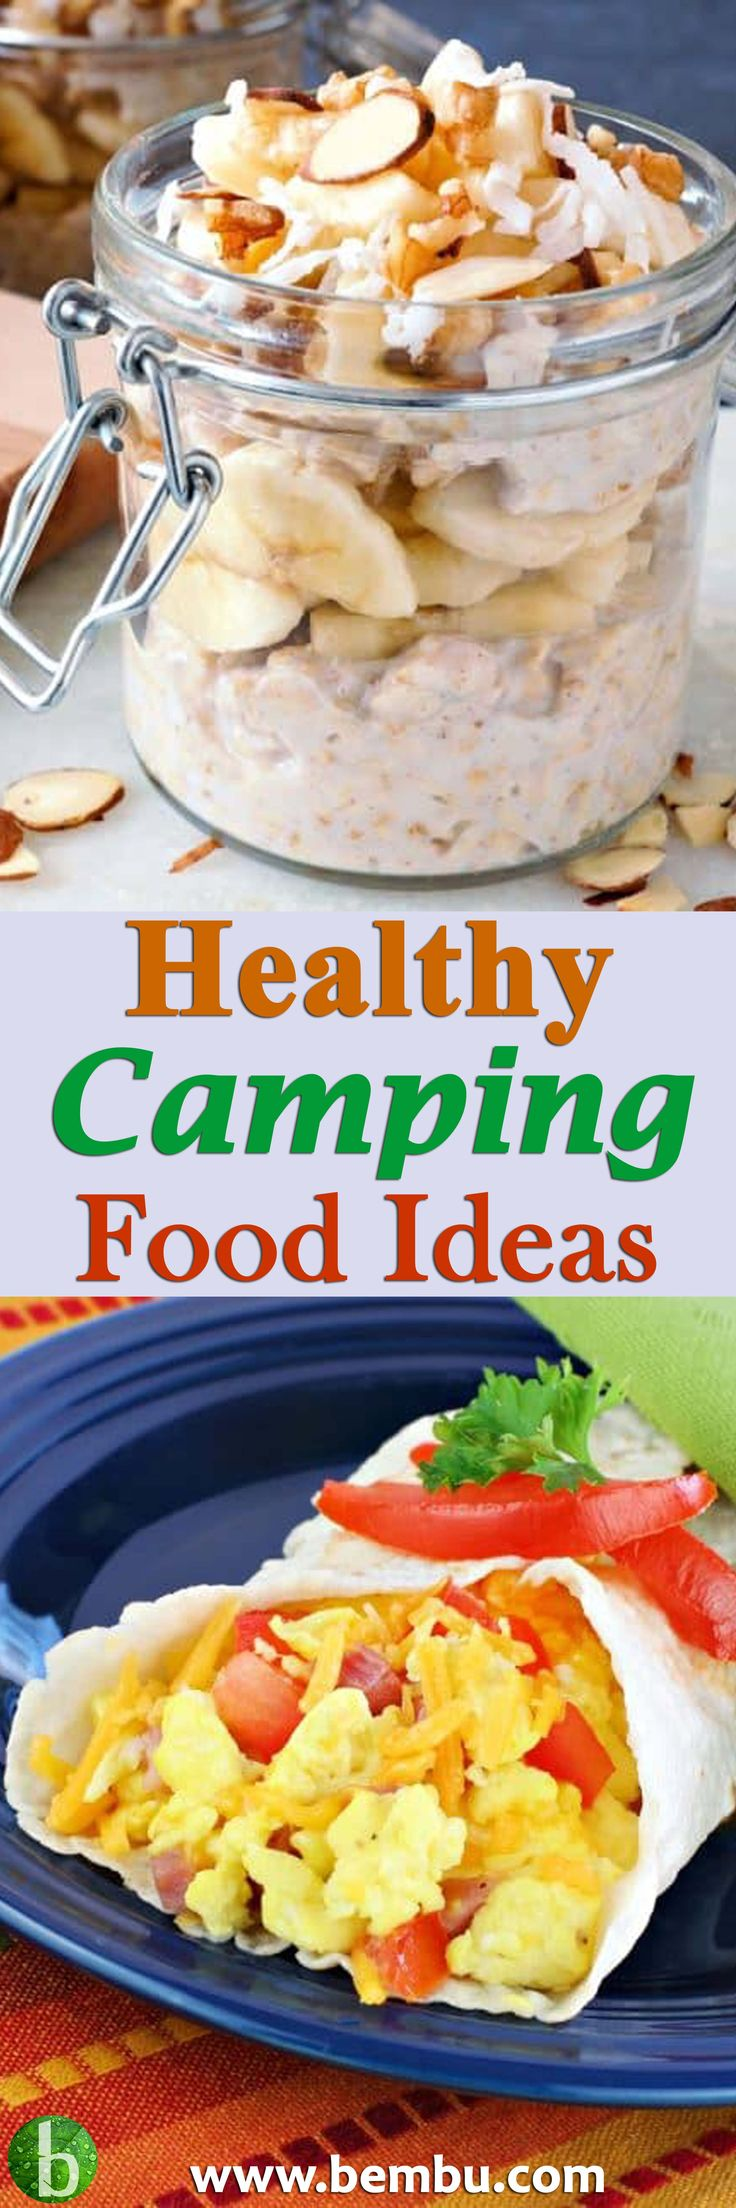 Healthy Camping Food Ideas Recipes